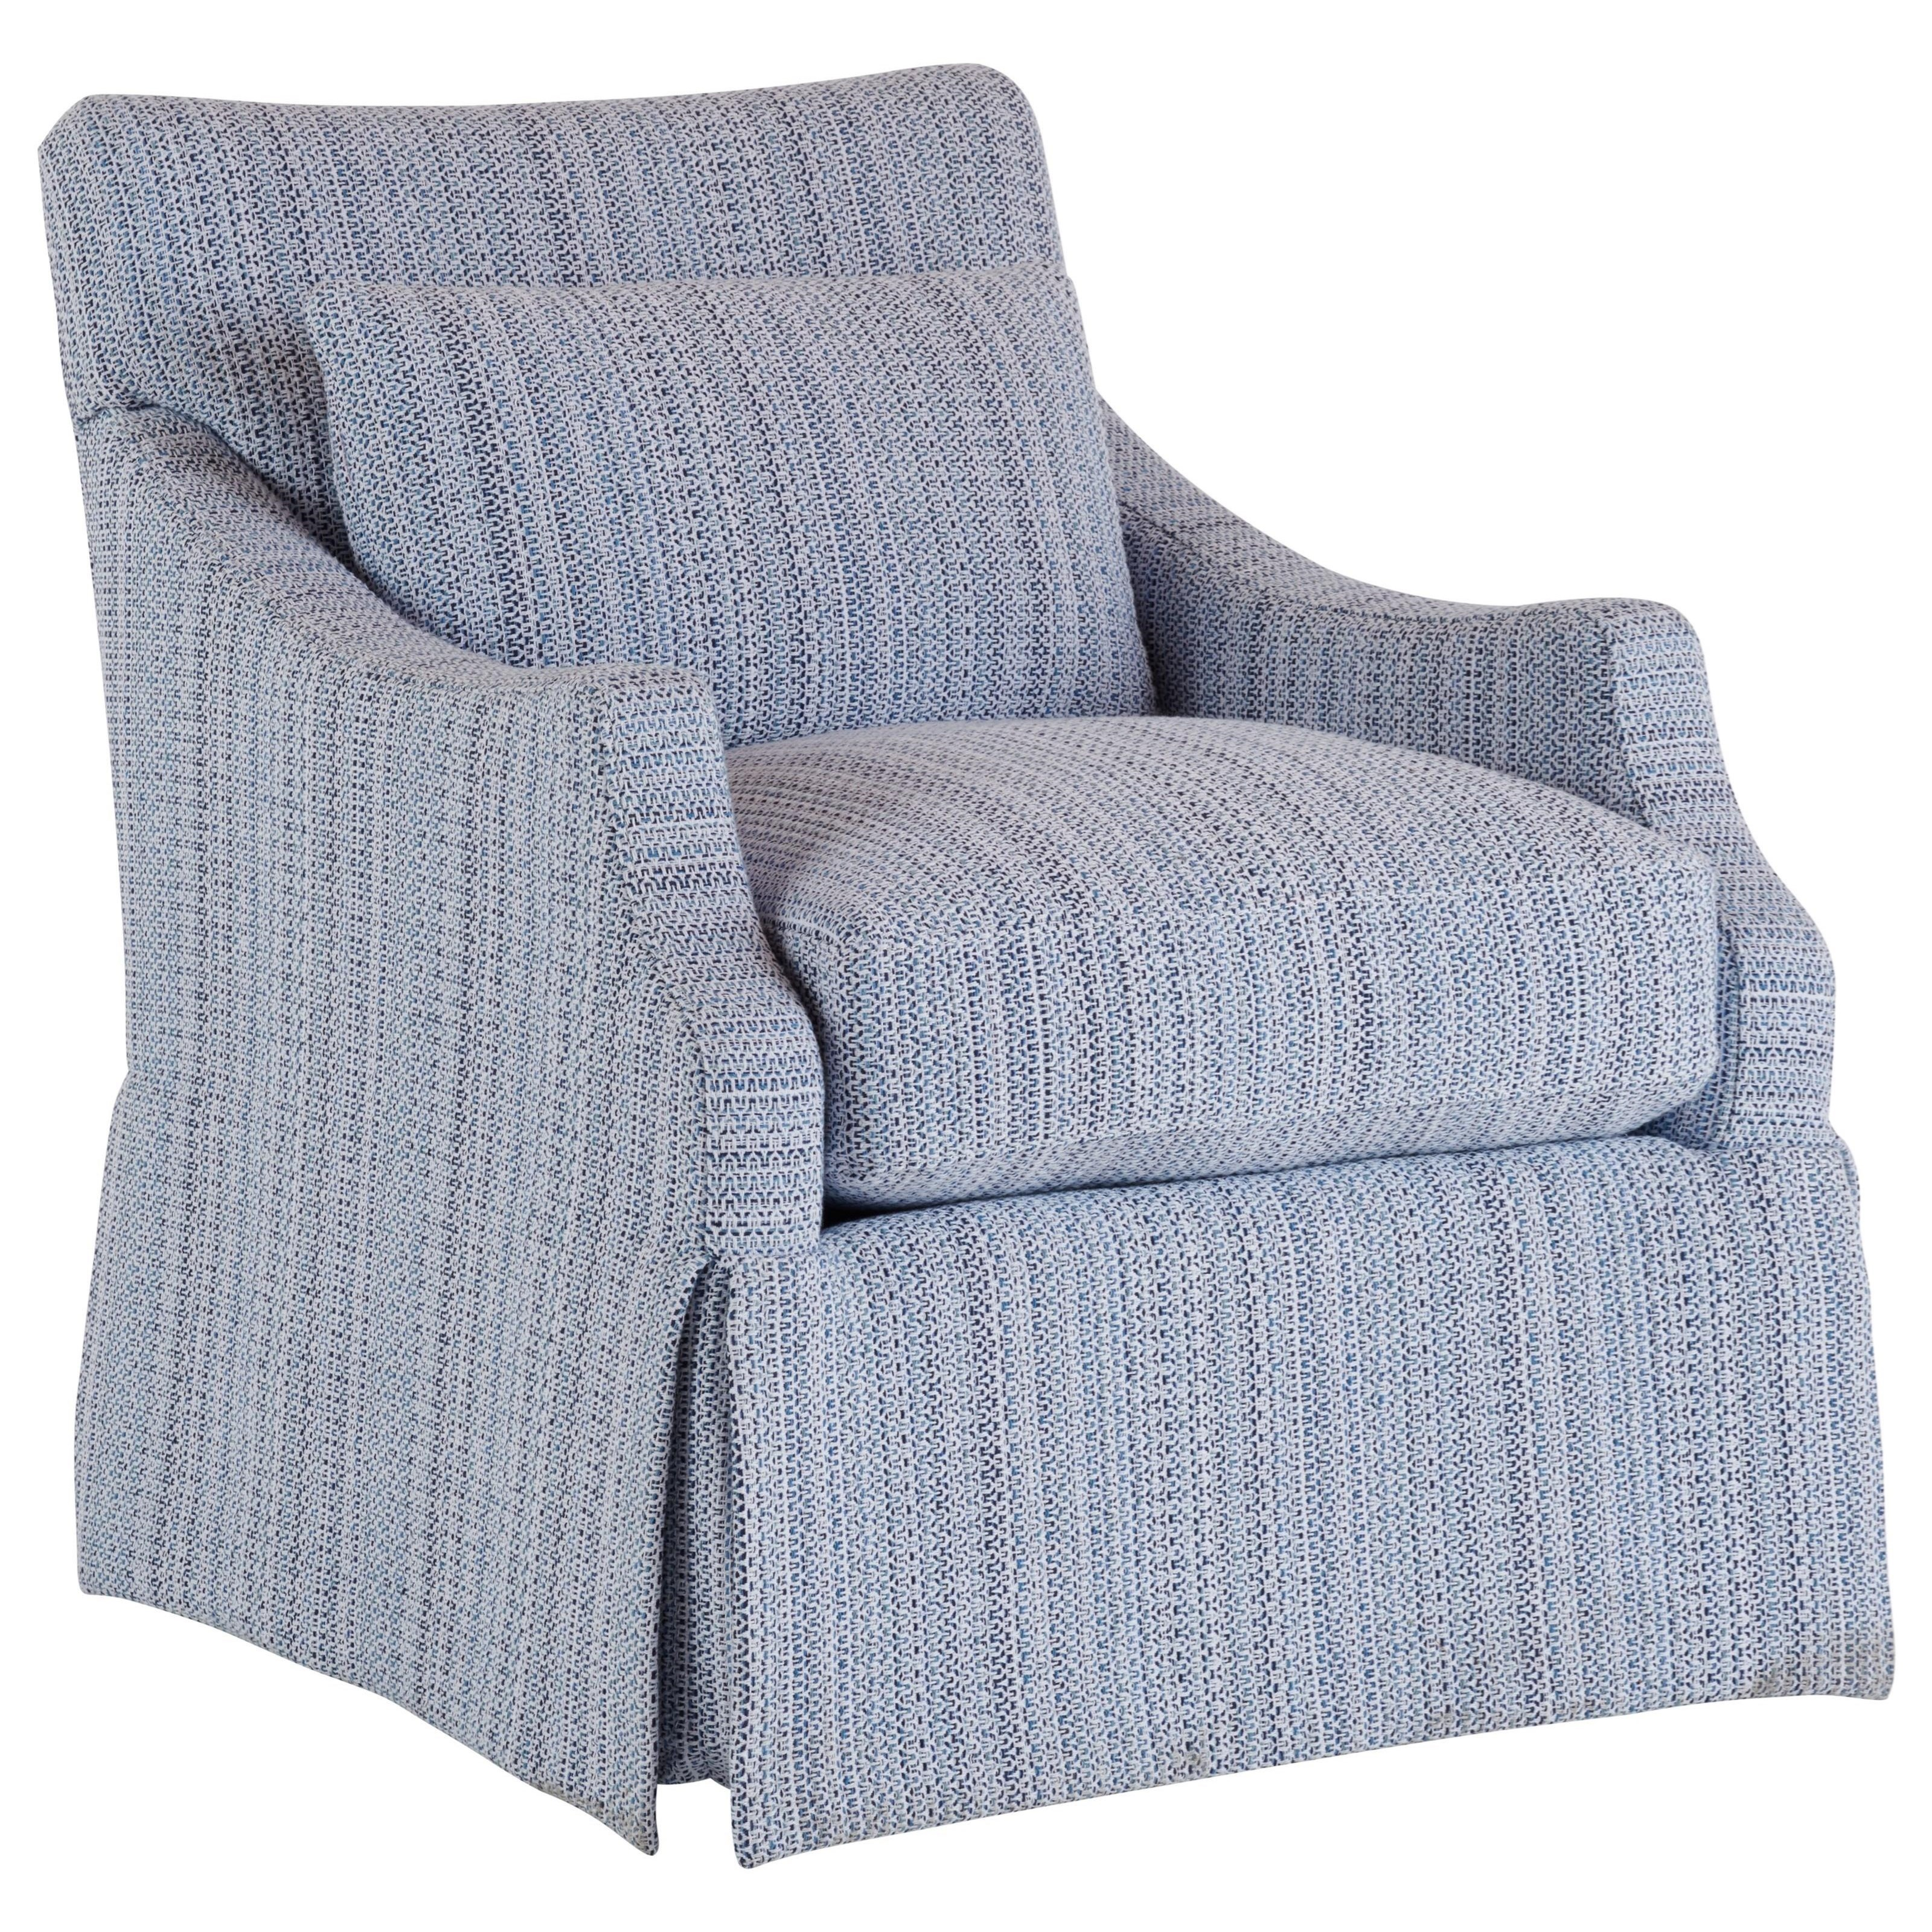 Accents Margaux Accent Chair by O'Connor Designs at Sprintz Furniture